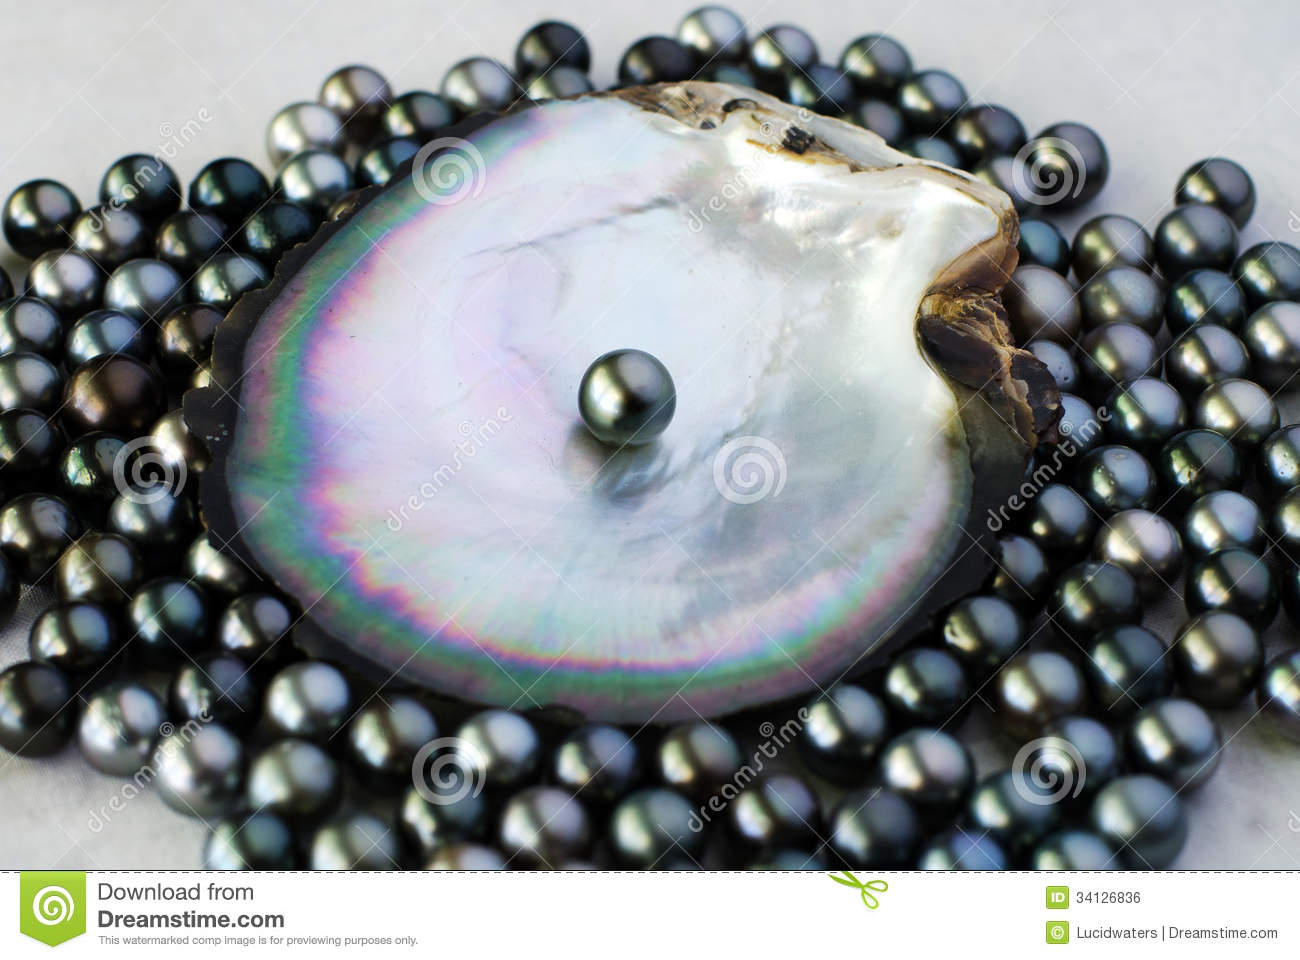 pearls diame averaging mm earringselegant featuring image in earrings black pearl two